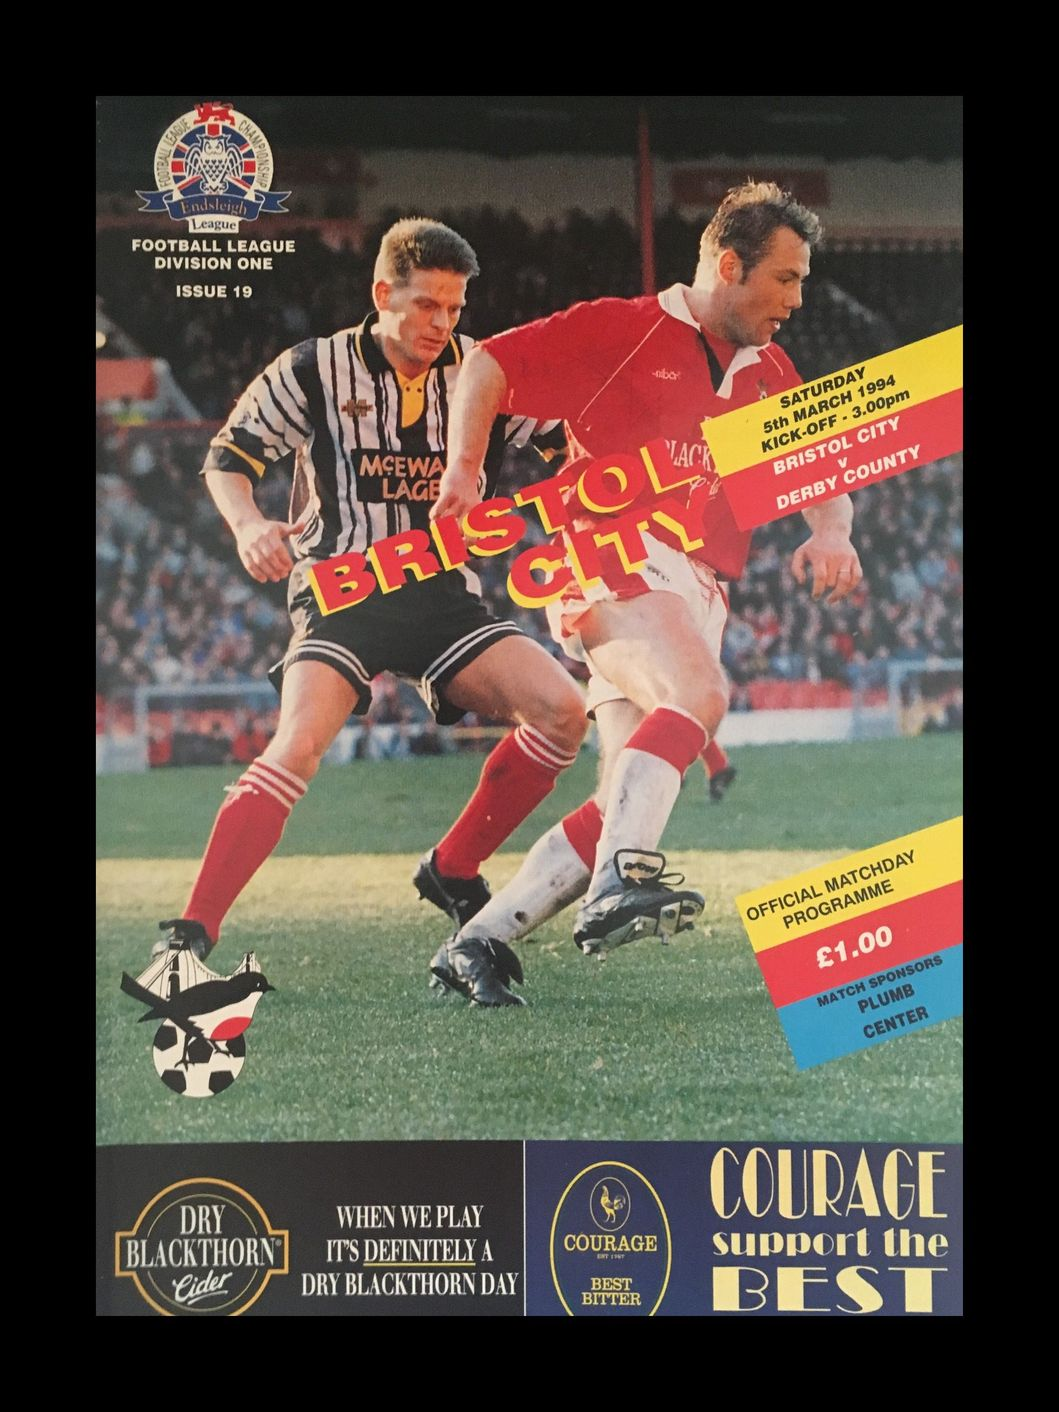 Bristol City v Derby County 05-03-1994 Programme